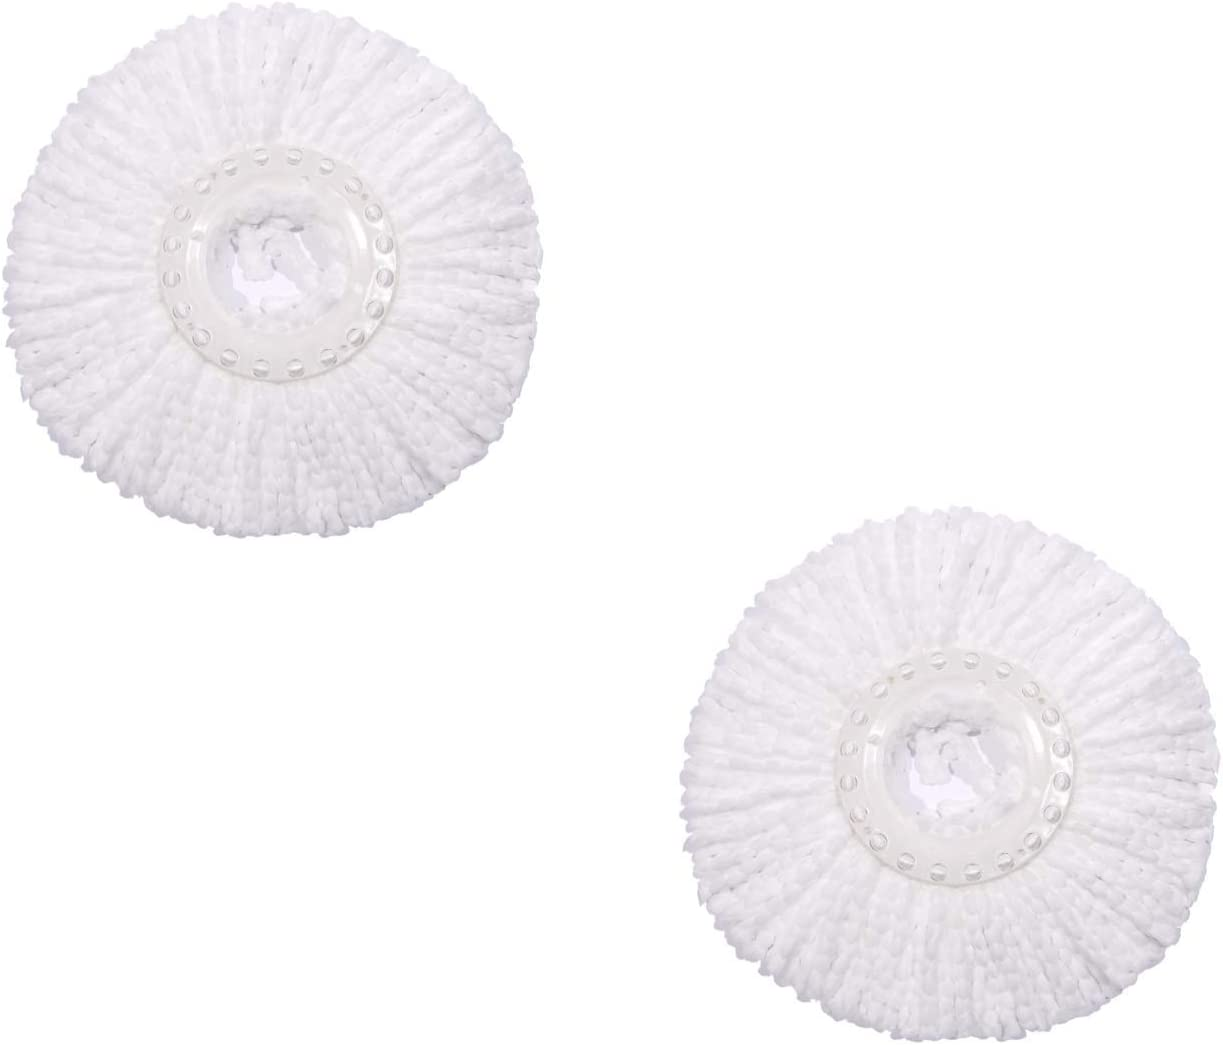 2 Pack Spin Mop Refill for Hurricane Magic 360° Spin mop Microfiber Mop Head Replacement - Round Shape Standard Size Hurricane Compatible Mop Head Replacement